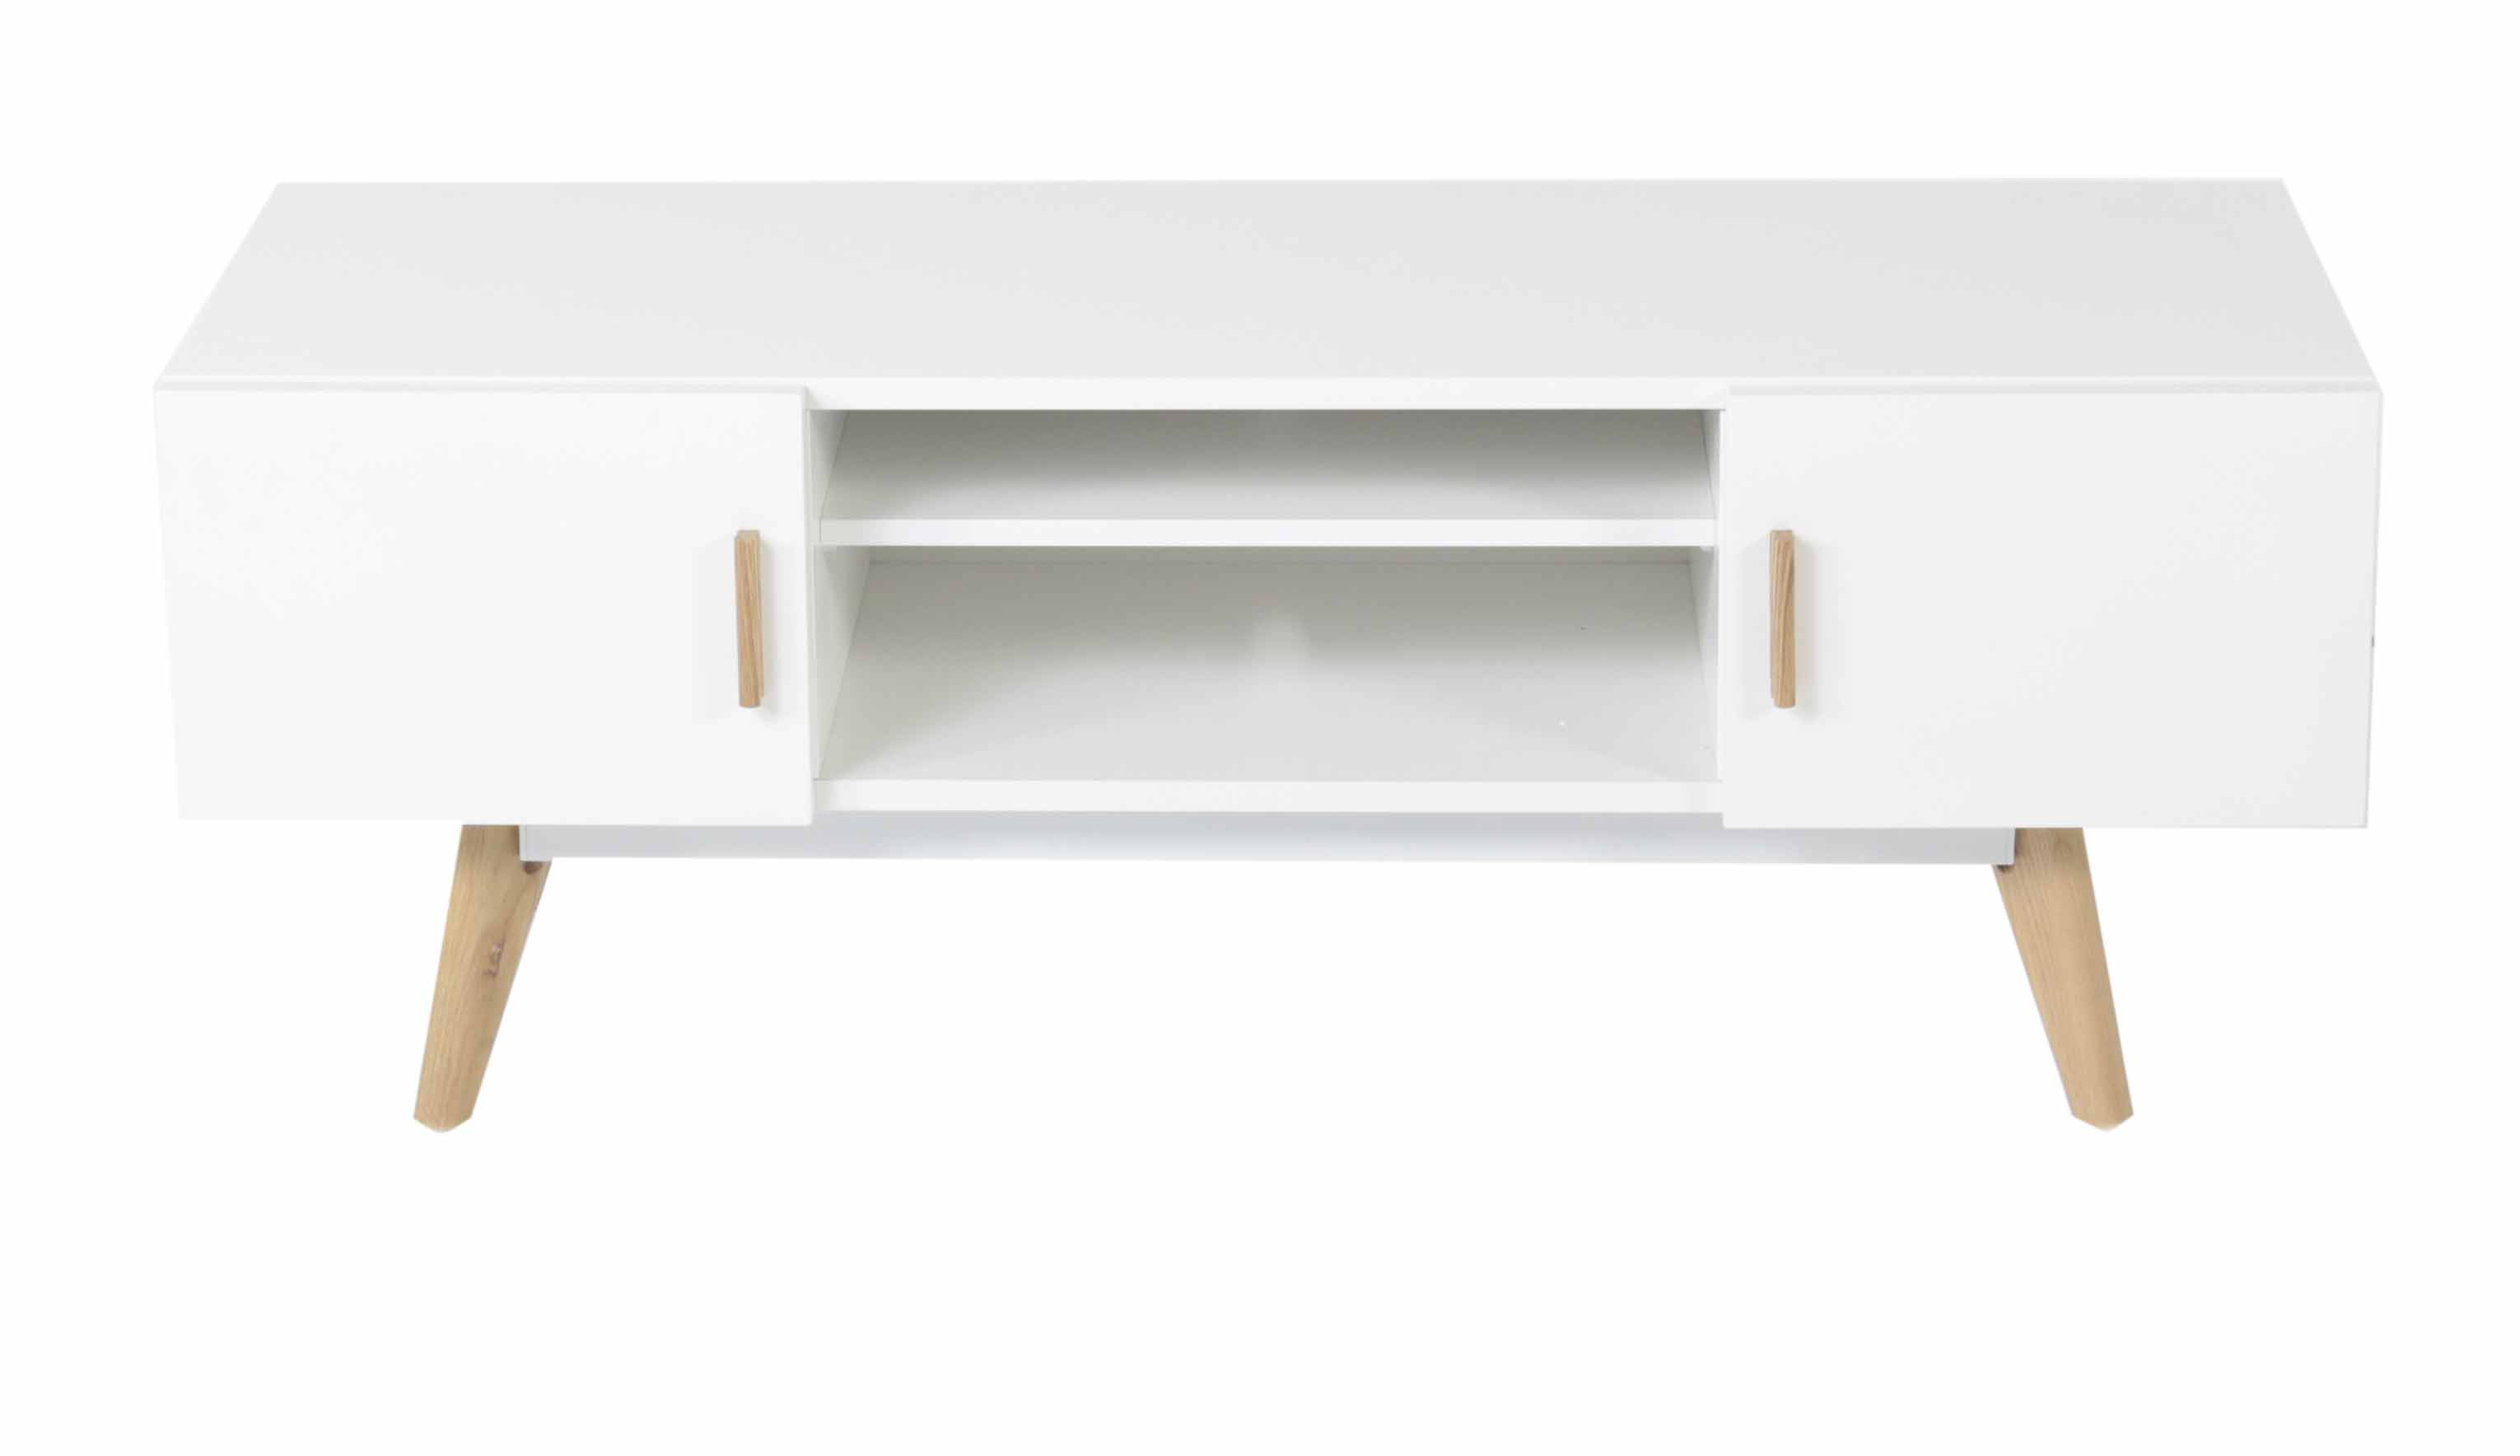 Meuble Blanc Scandinave Artzein - Scandinave Meuble Tv Infini Photo[mjhdah]http://www.mykaz.fr/4070-thickbox_default/meuble-tv-blanc-style-scandinave.jpg